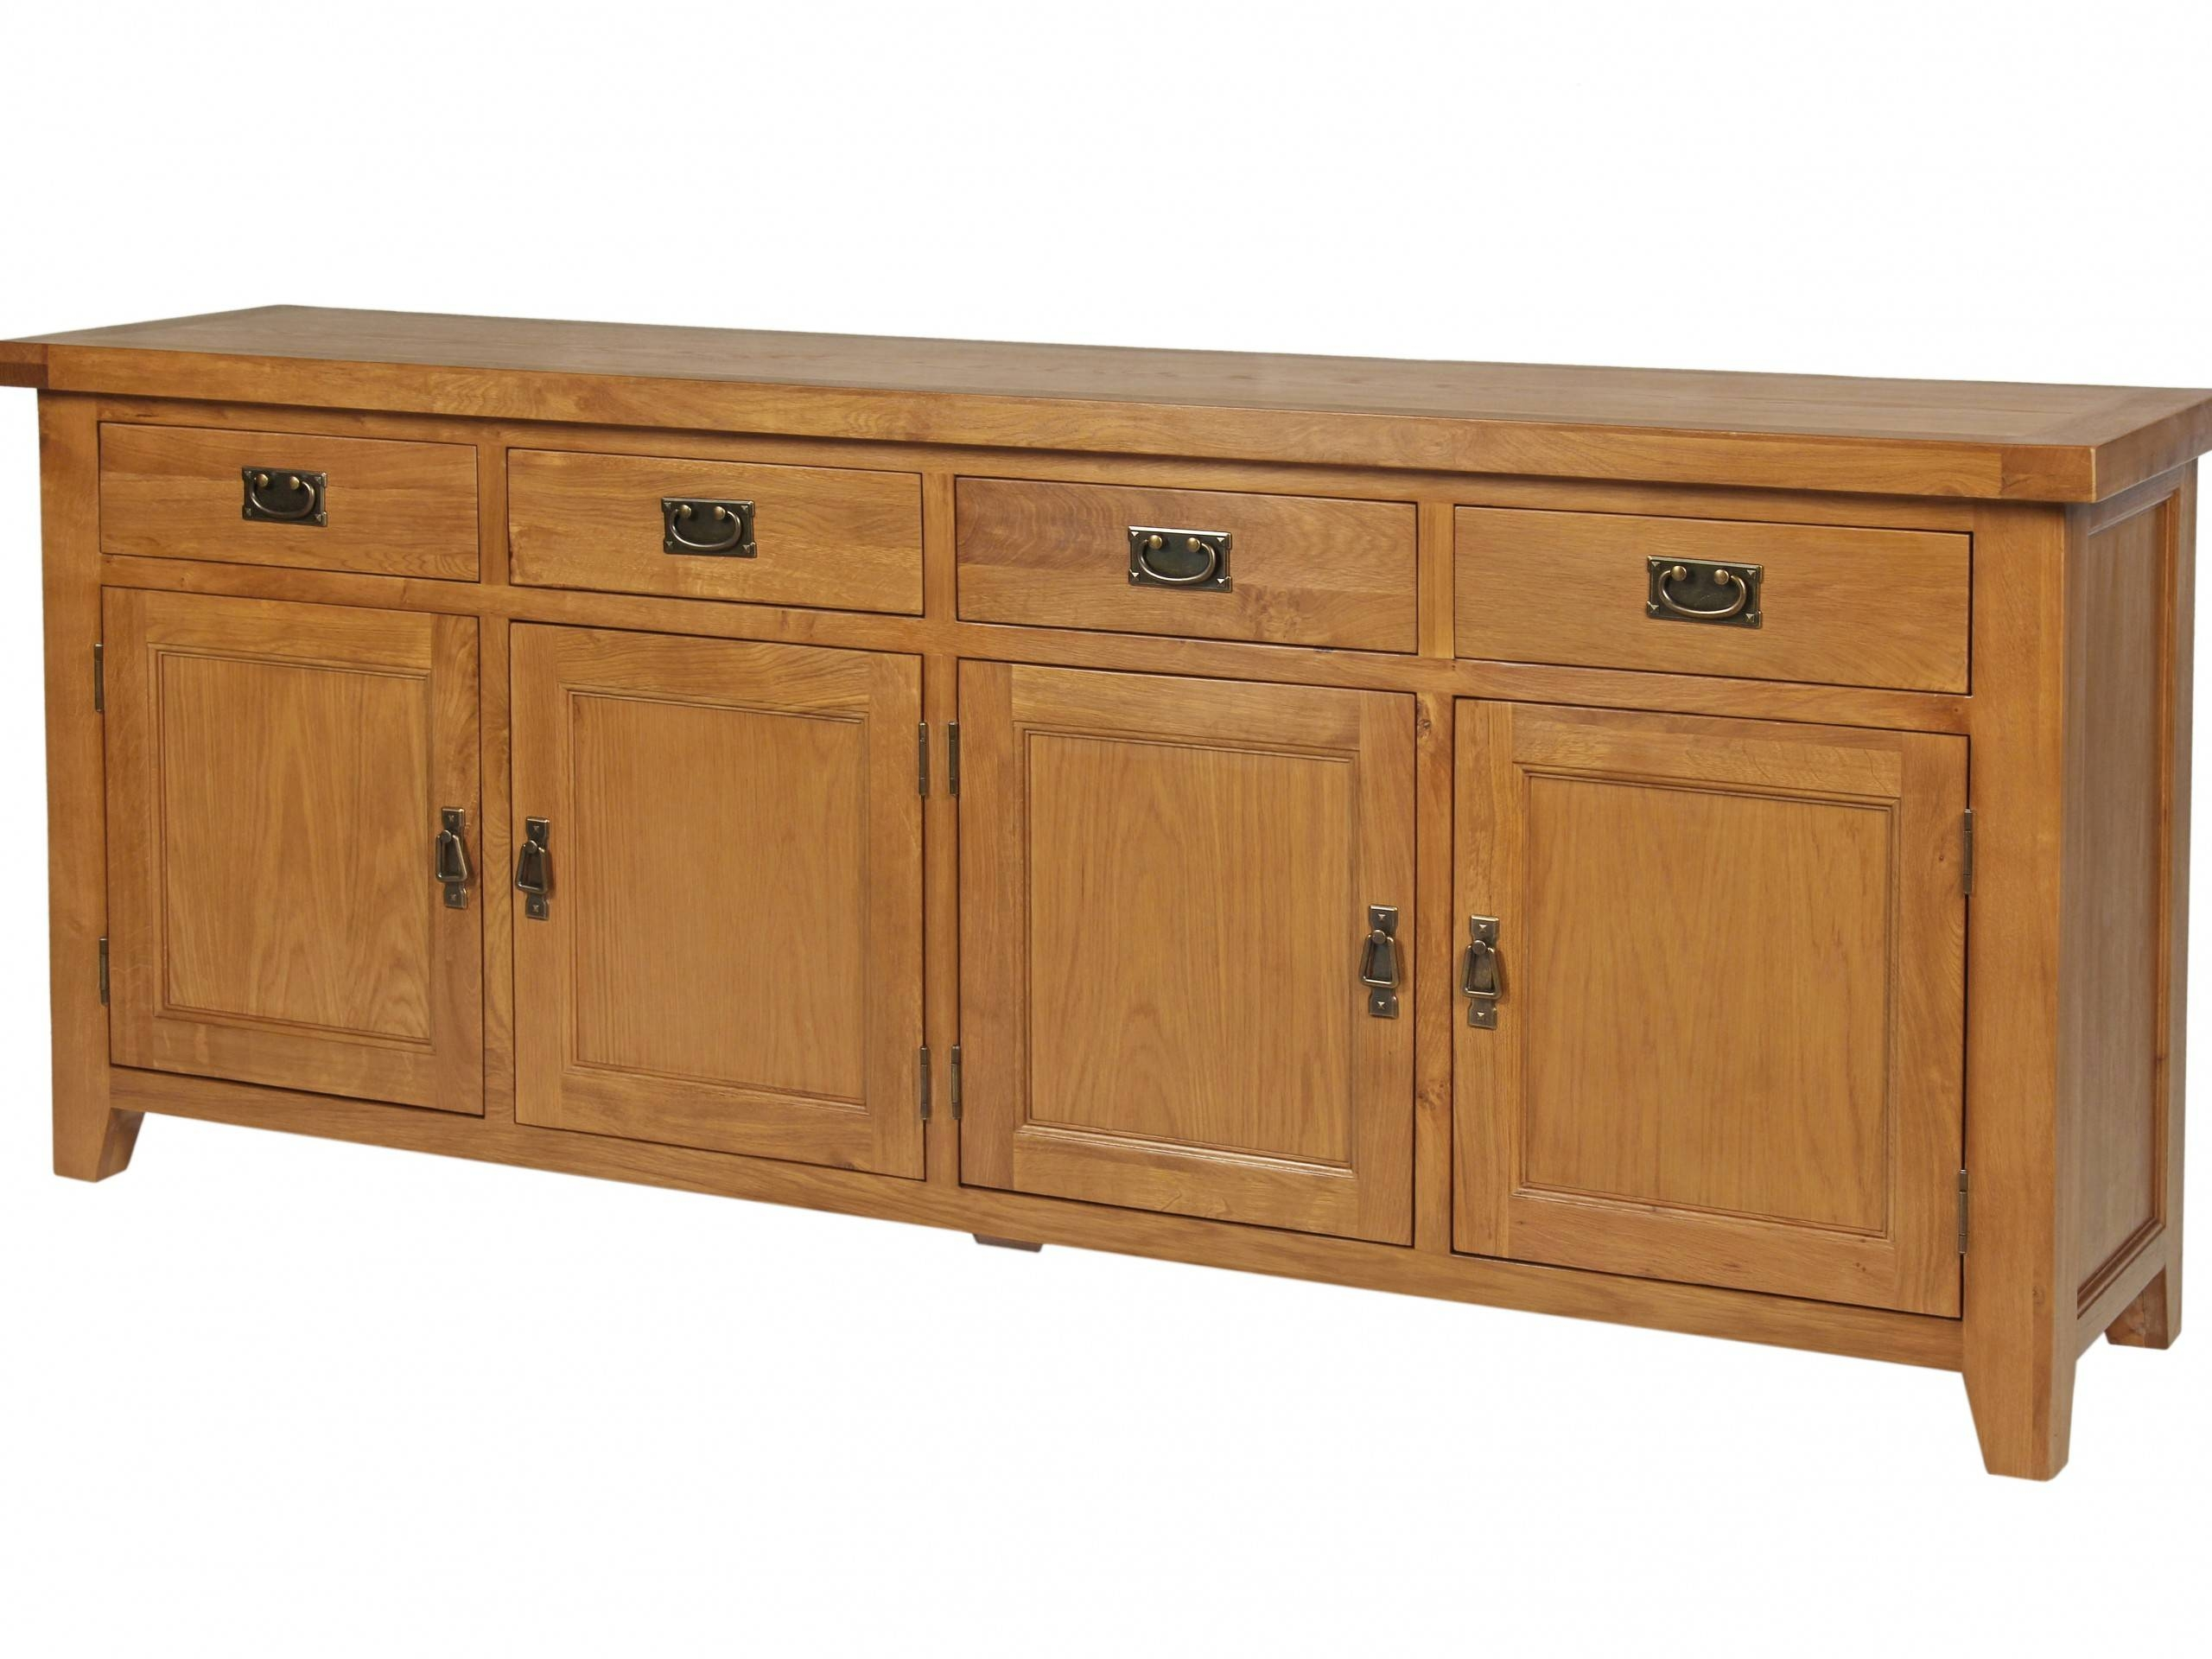 200Cm Large Country Oak Sideboard | Large Oak Sideboard regarding Oak Sideboards For Sale (Image 1 of 30)